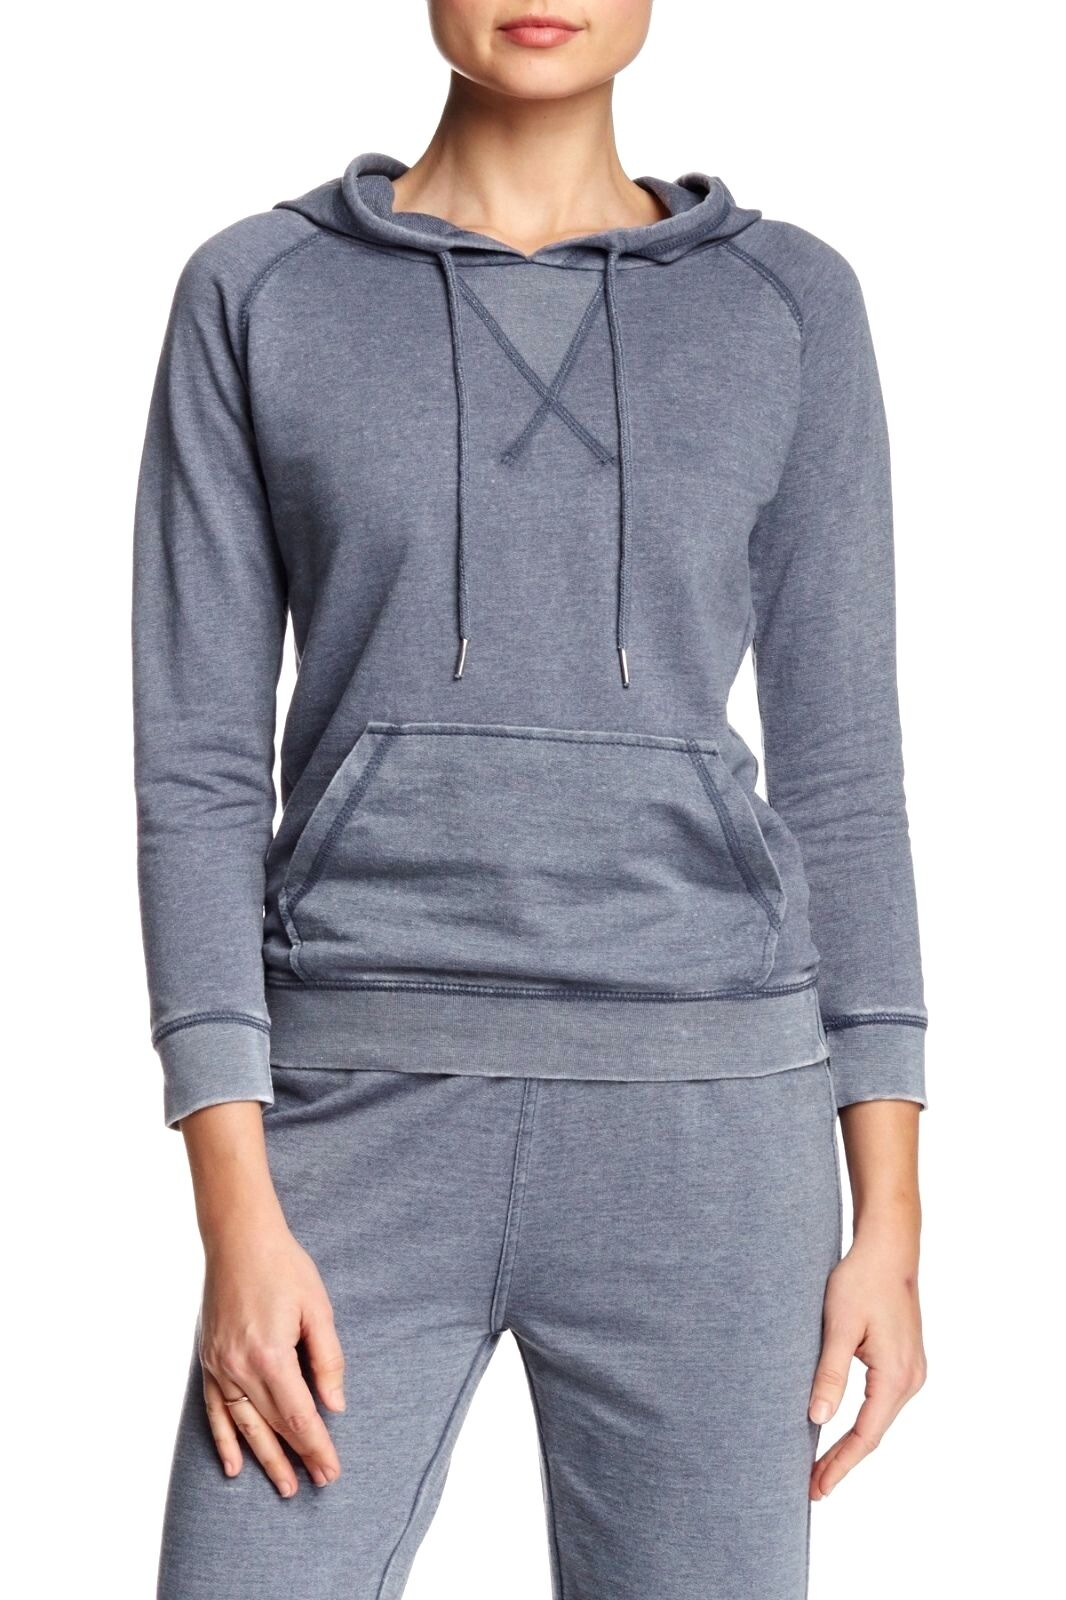 Central Park West - L - NWT  - bluee Distressed French Terry Hoodie Sweatshirt